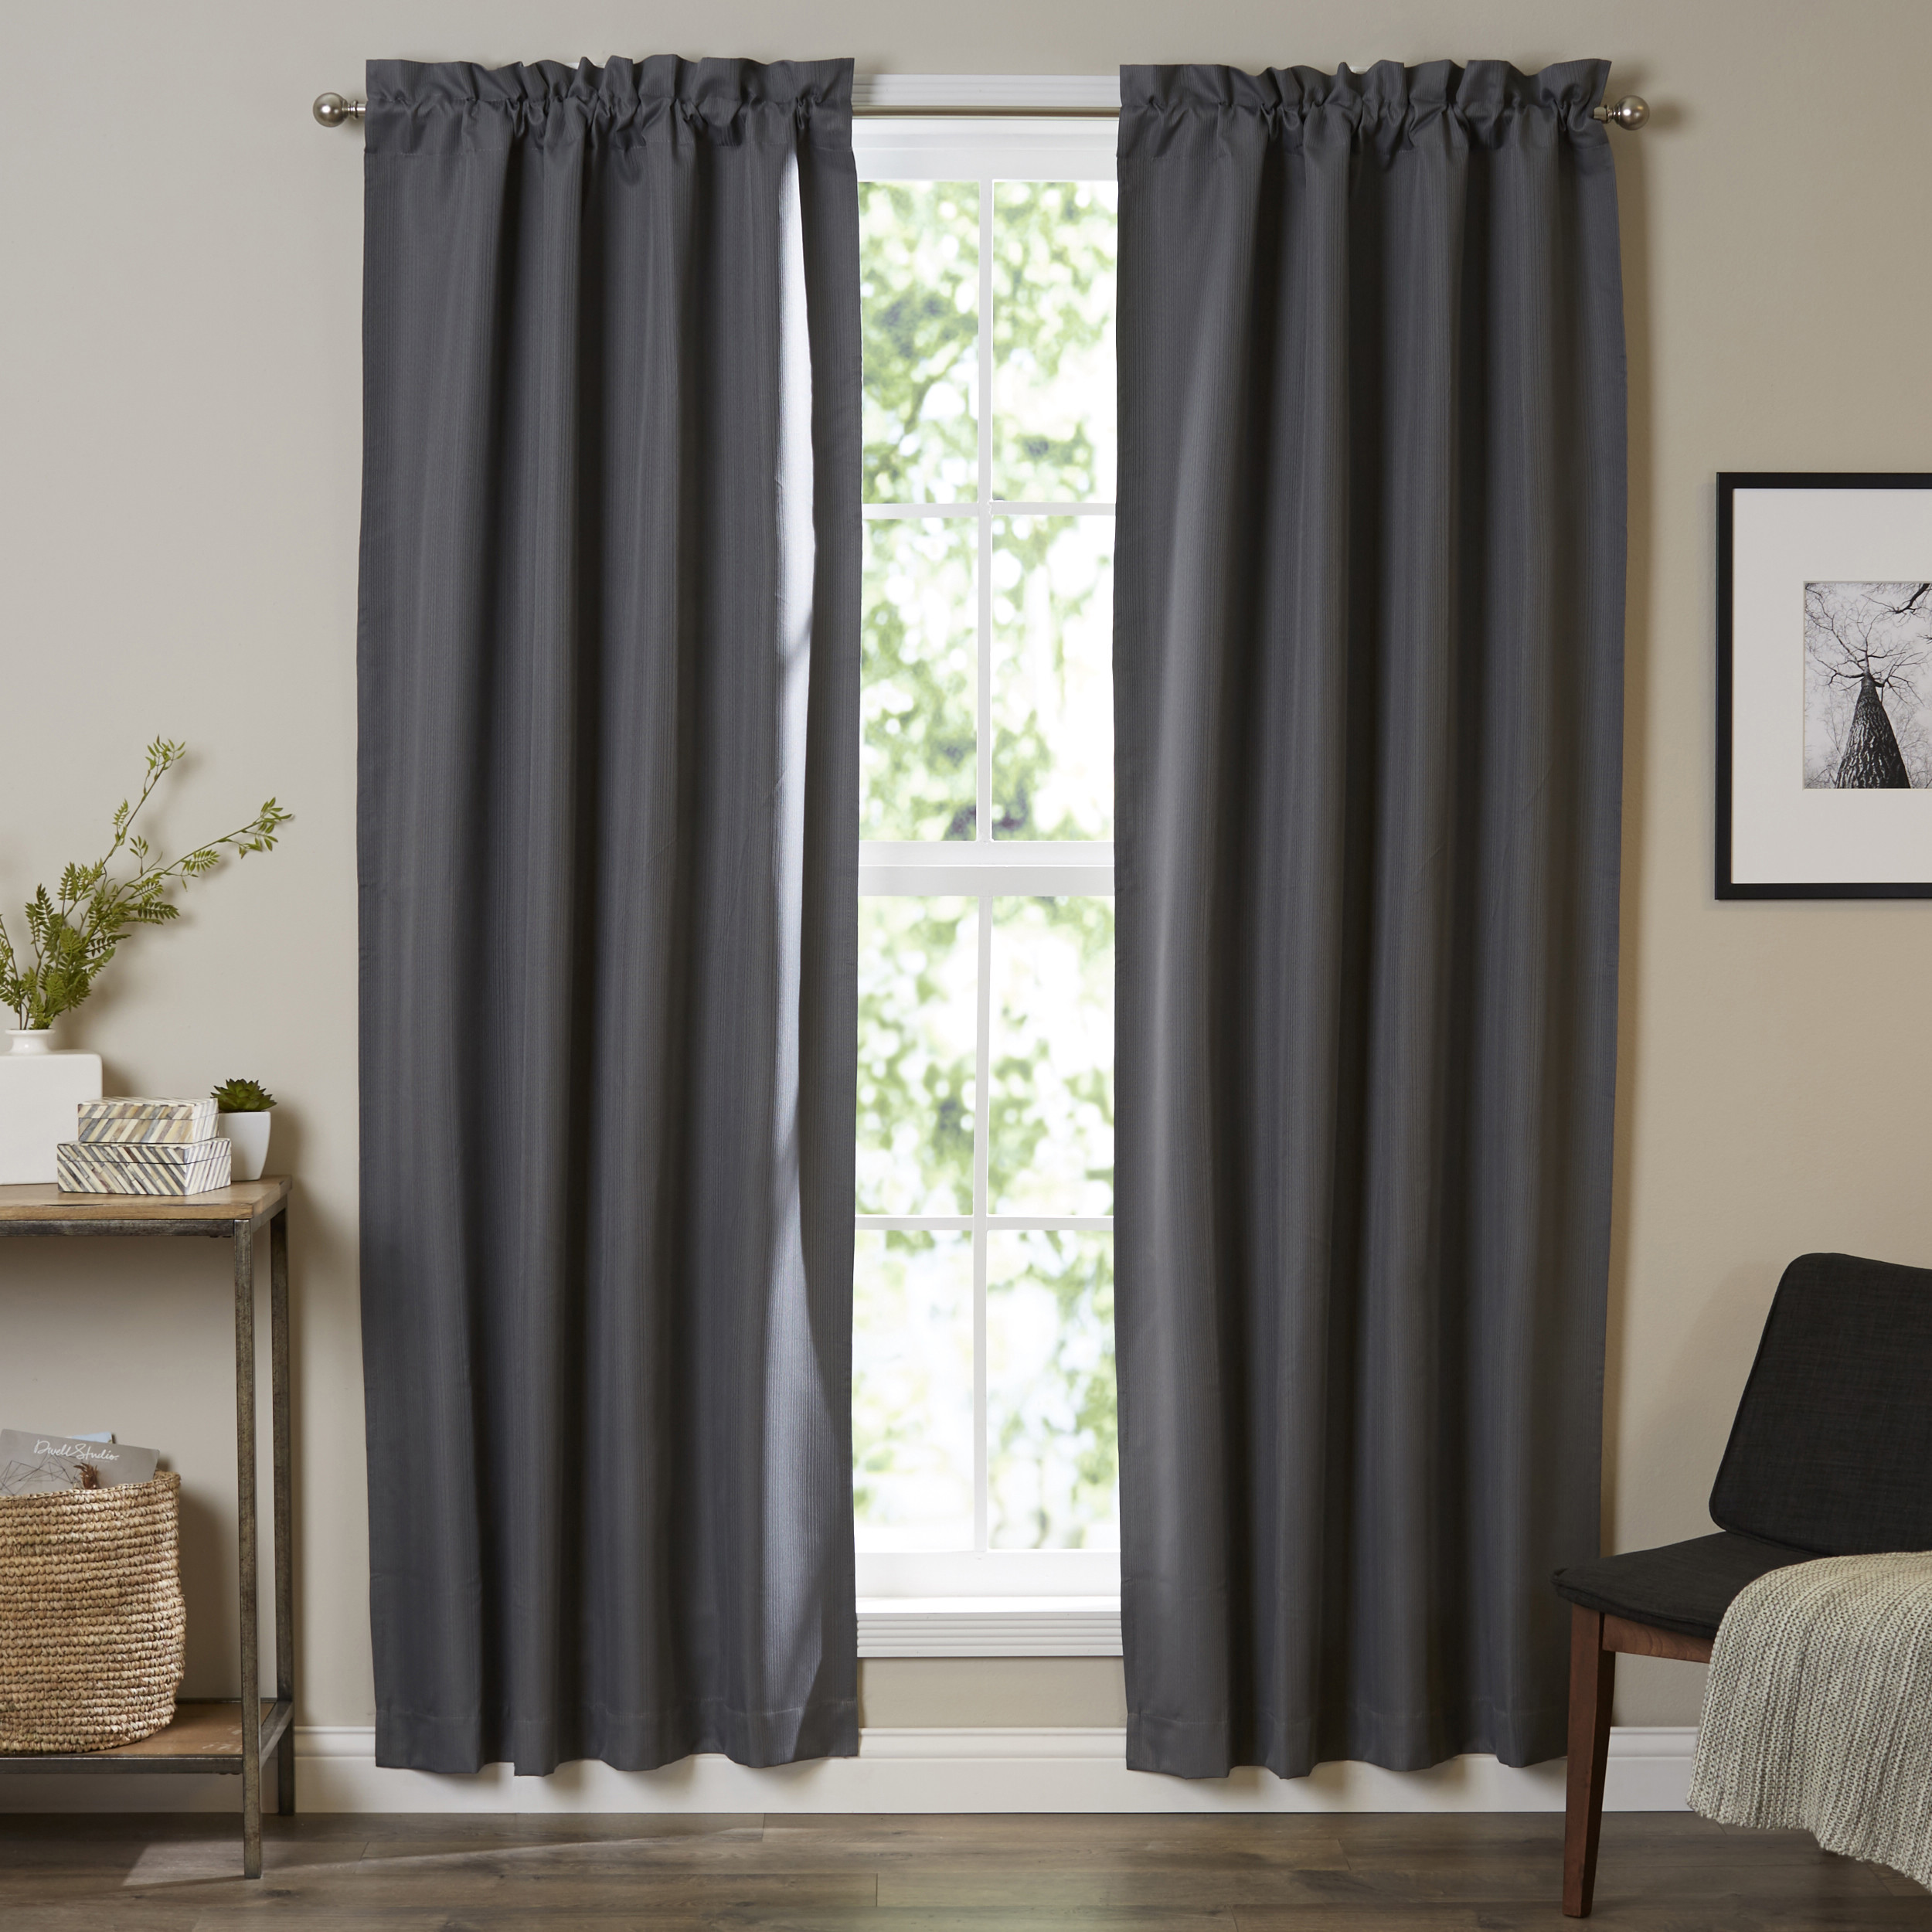 at ideasrtain targettarget astonishing curtain curtains blue photo full size living of target frame kidsrtainsoutdoor window room bedroom blackout soundproof image for decor wall blind shower ideas grey blinds brilliant